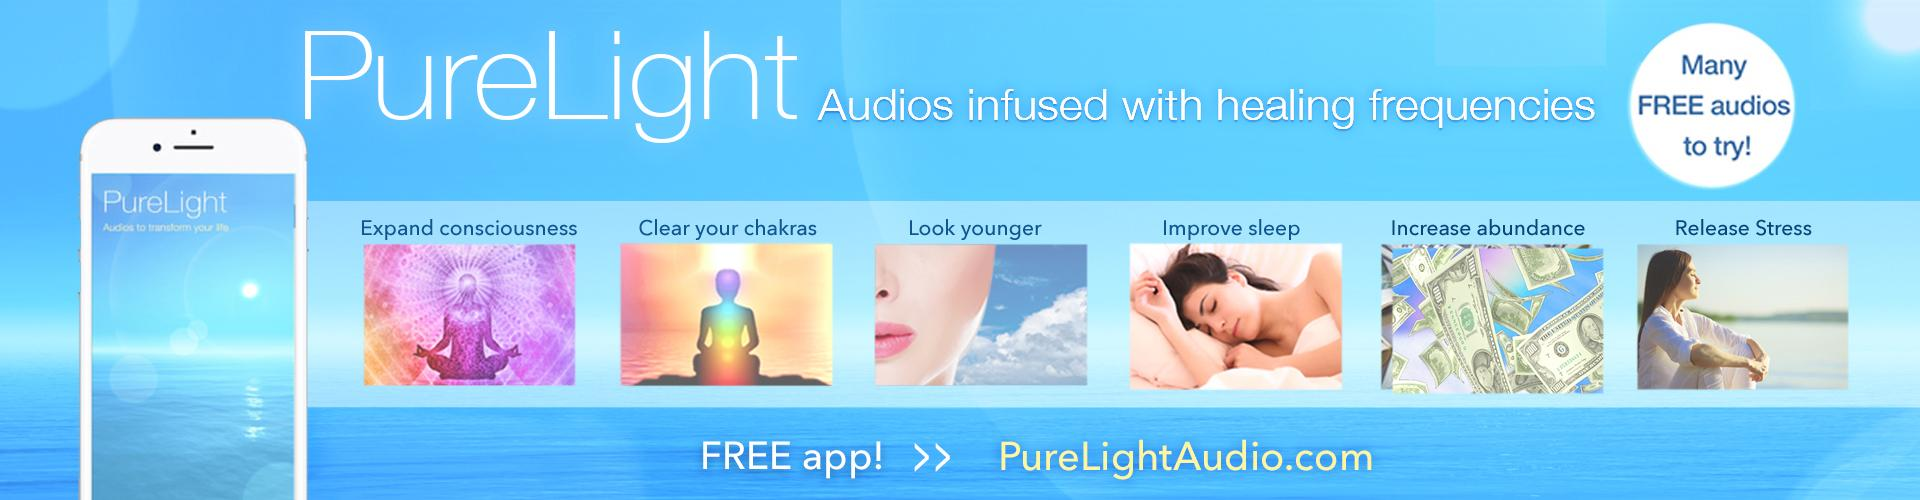 PureLight Audio - Healing Frequencies - Free App